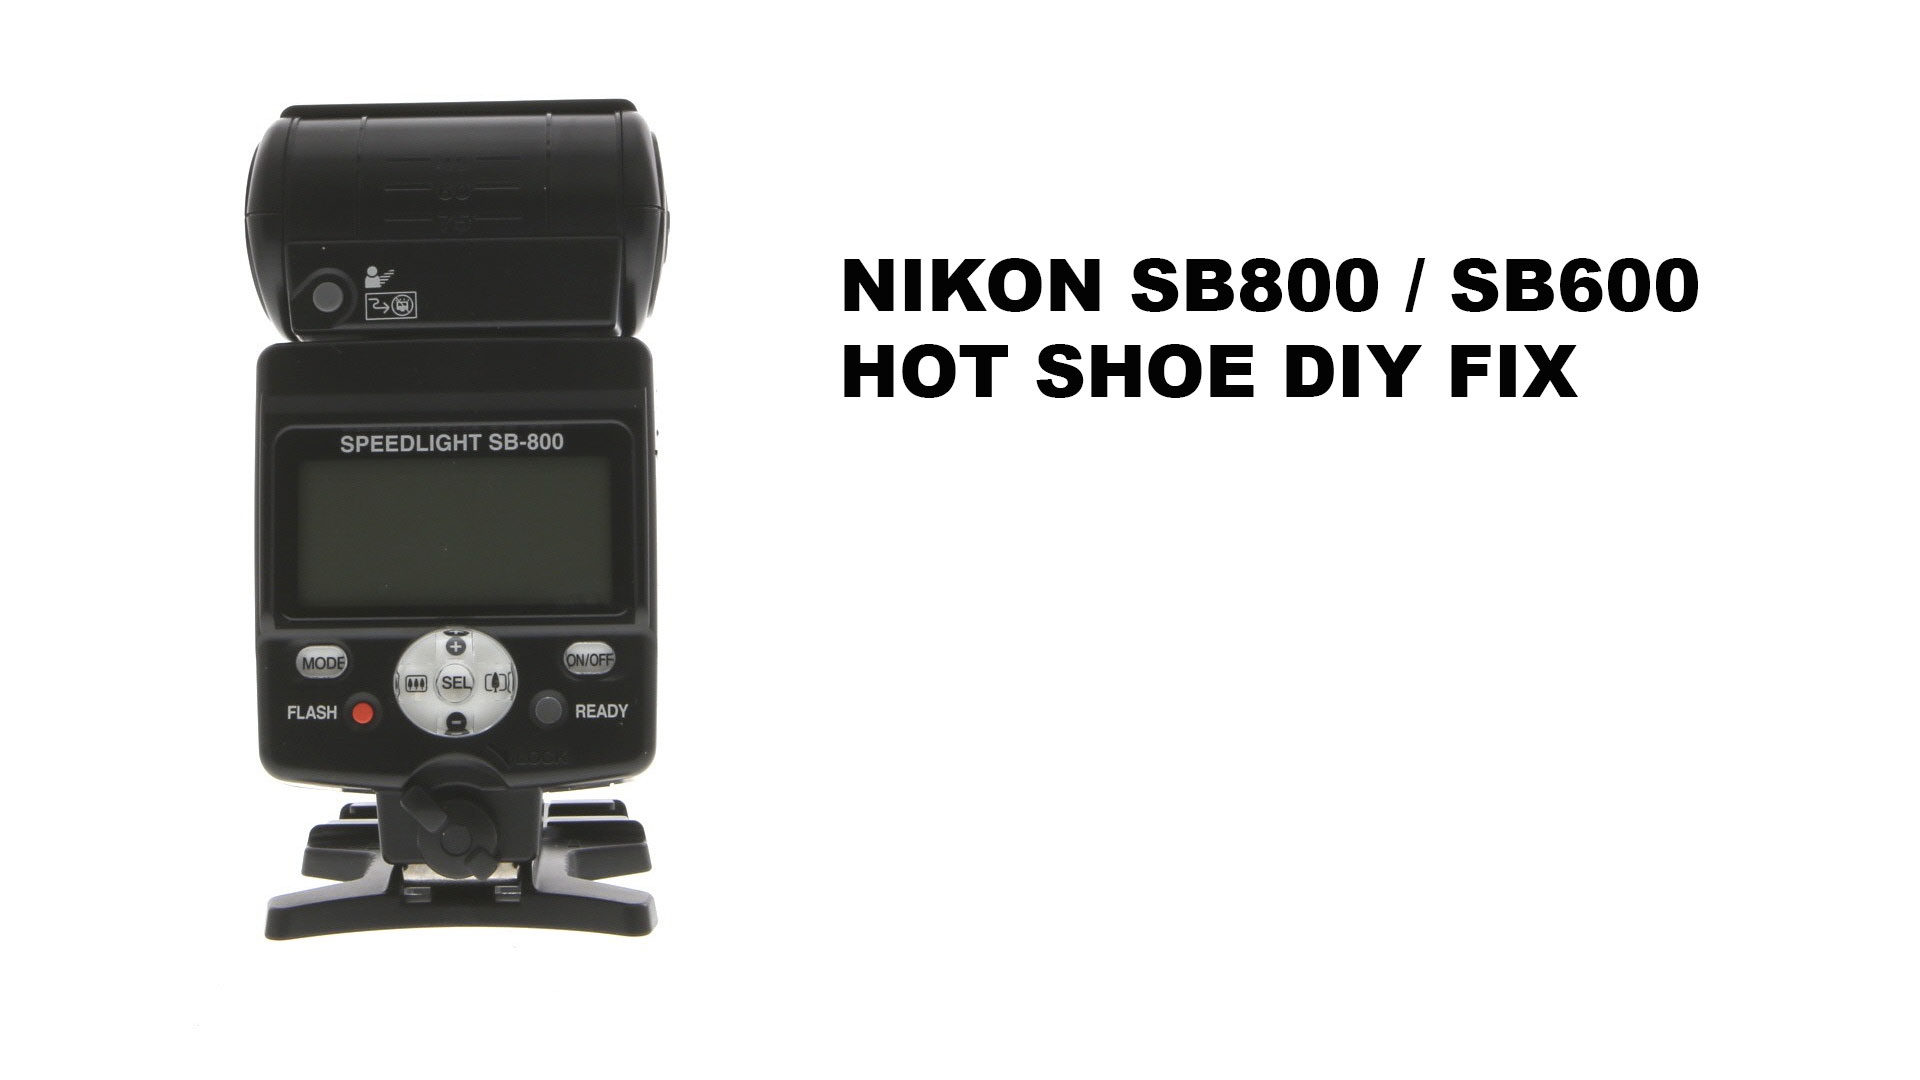 NIKON SB800 SB600 Flash Hotshoe DIY Fix